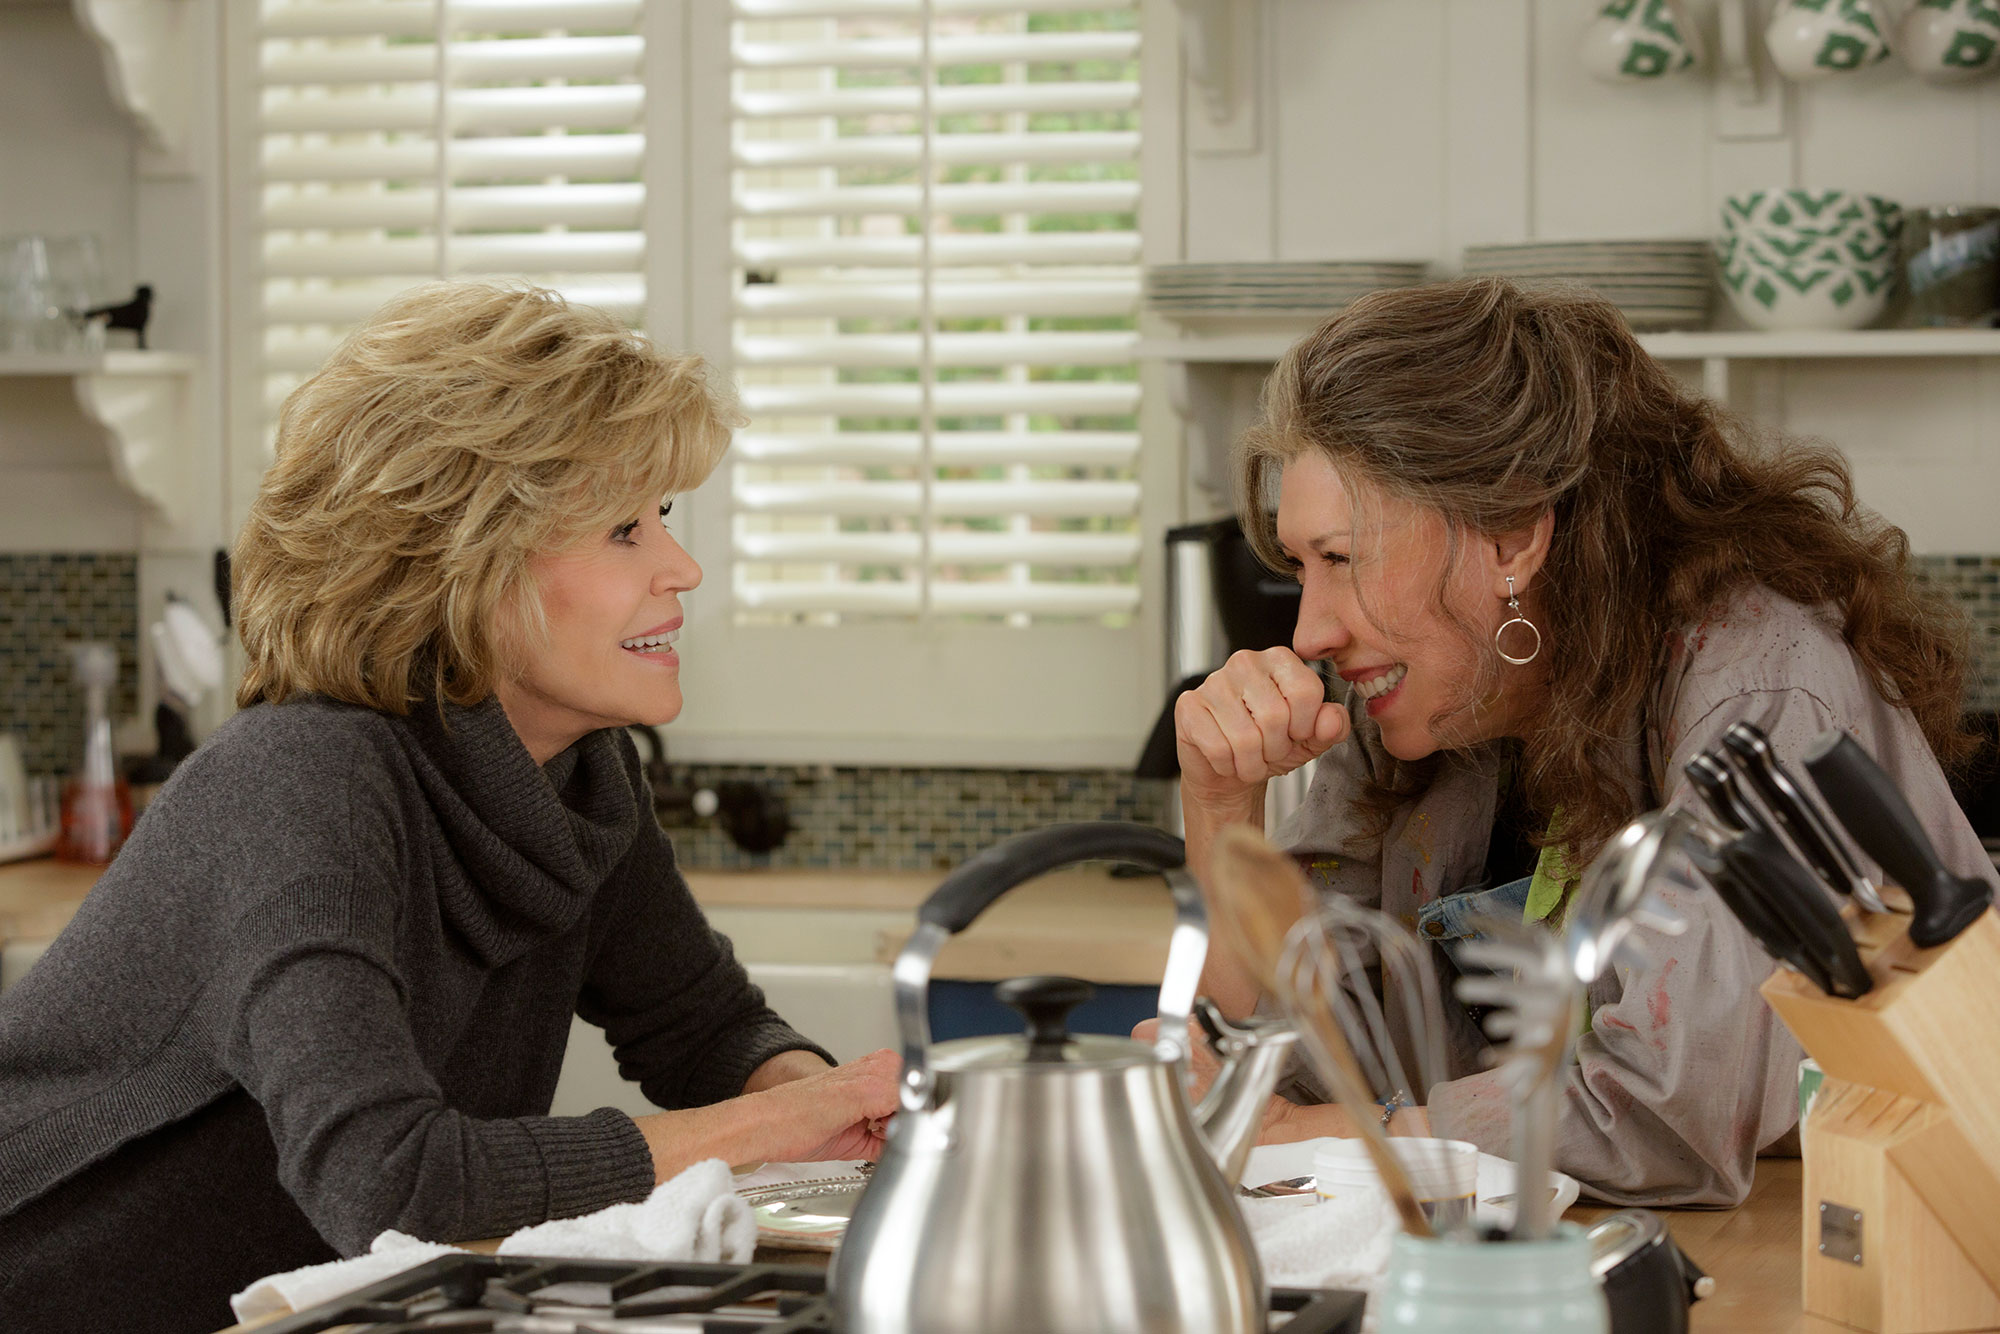 """1E1AAAF9 Jane Fonda and Lily Tomlin in the Netflix Original Series """"Grace and Frankie"""". Photo by Melissa Moseley for Netflix."""